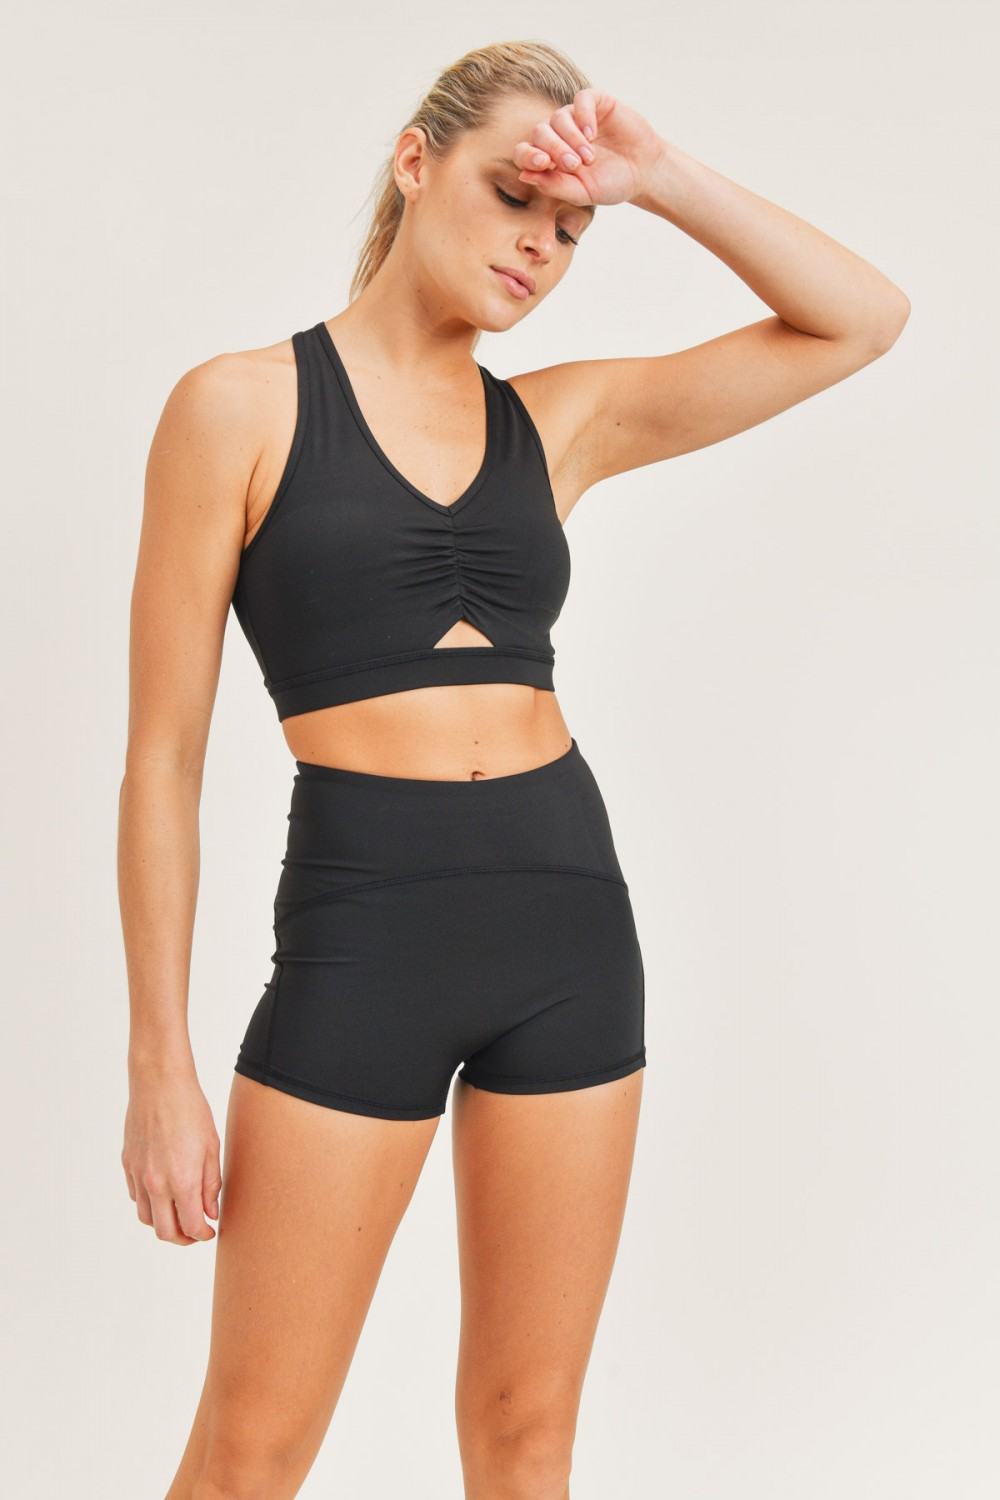 AT3061<br/>Mono B GREEN - Peekaboo Sports Bra with Gathered Front (AT3061)